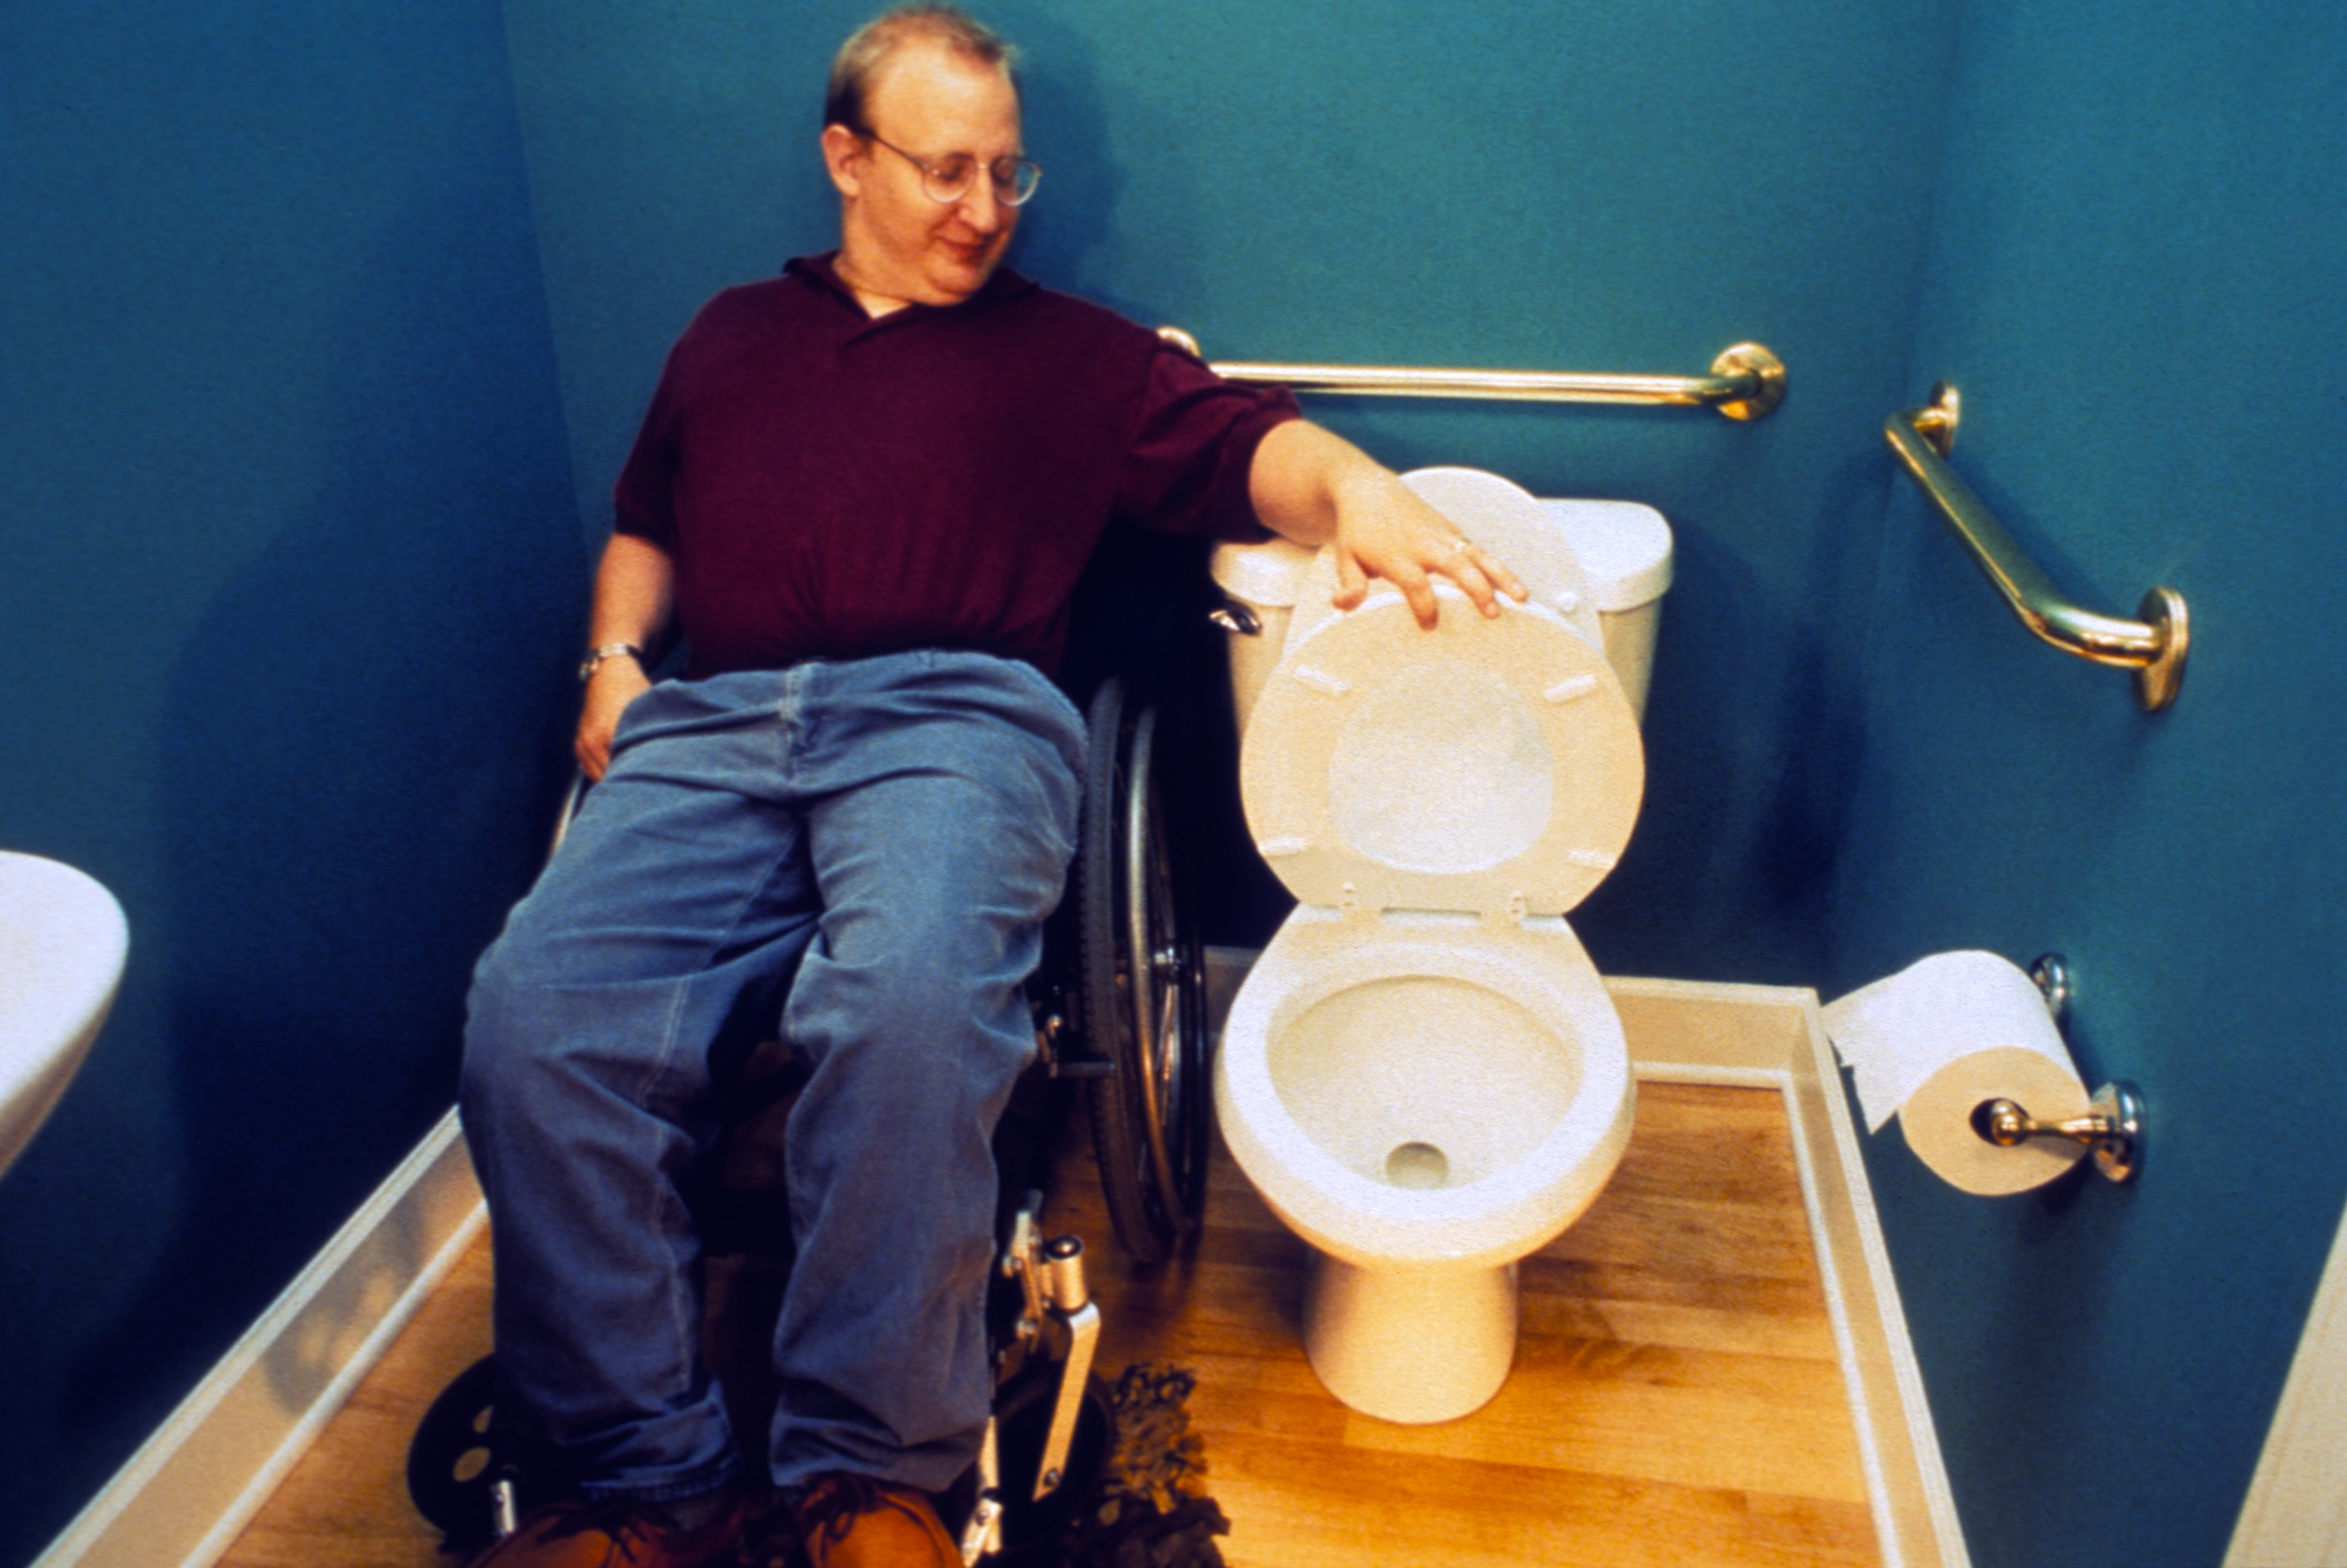 man sitting on wheelchair looking at the pot seat